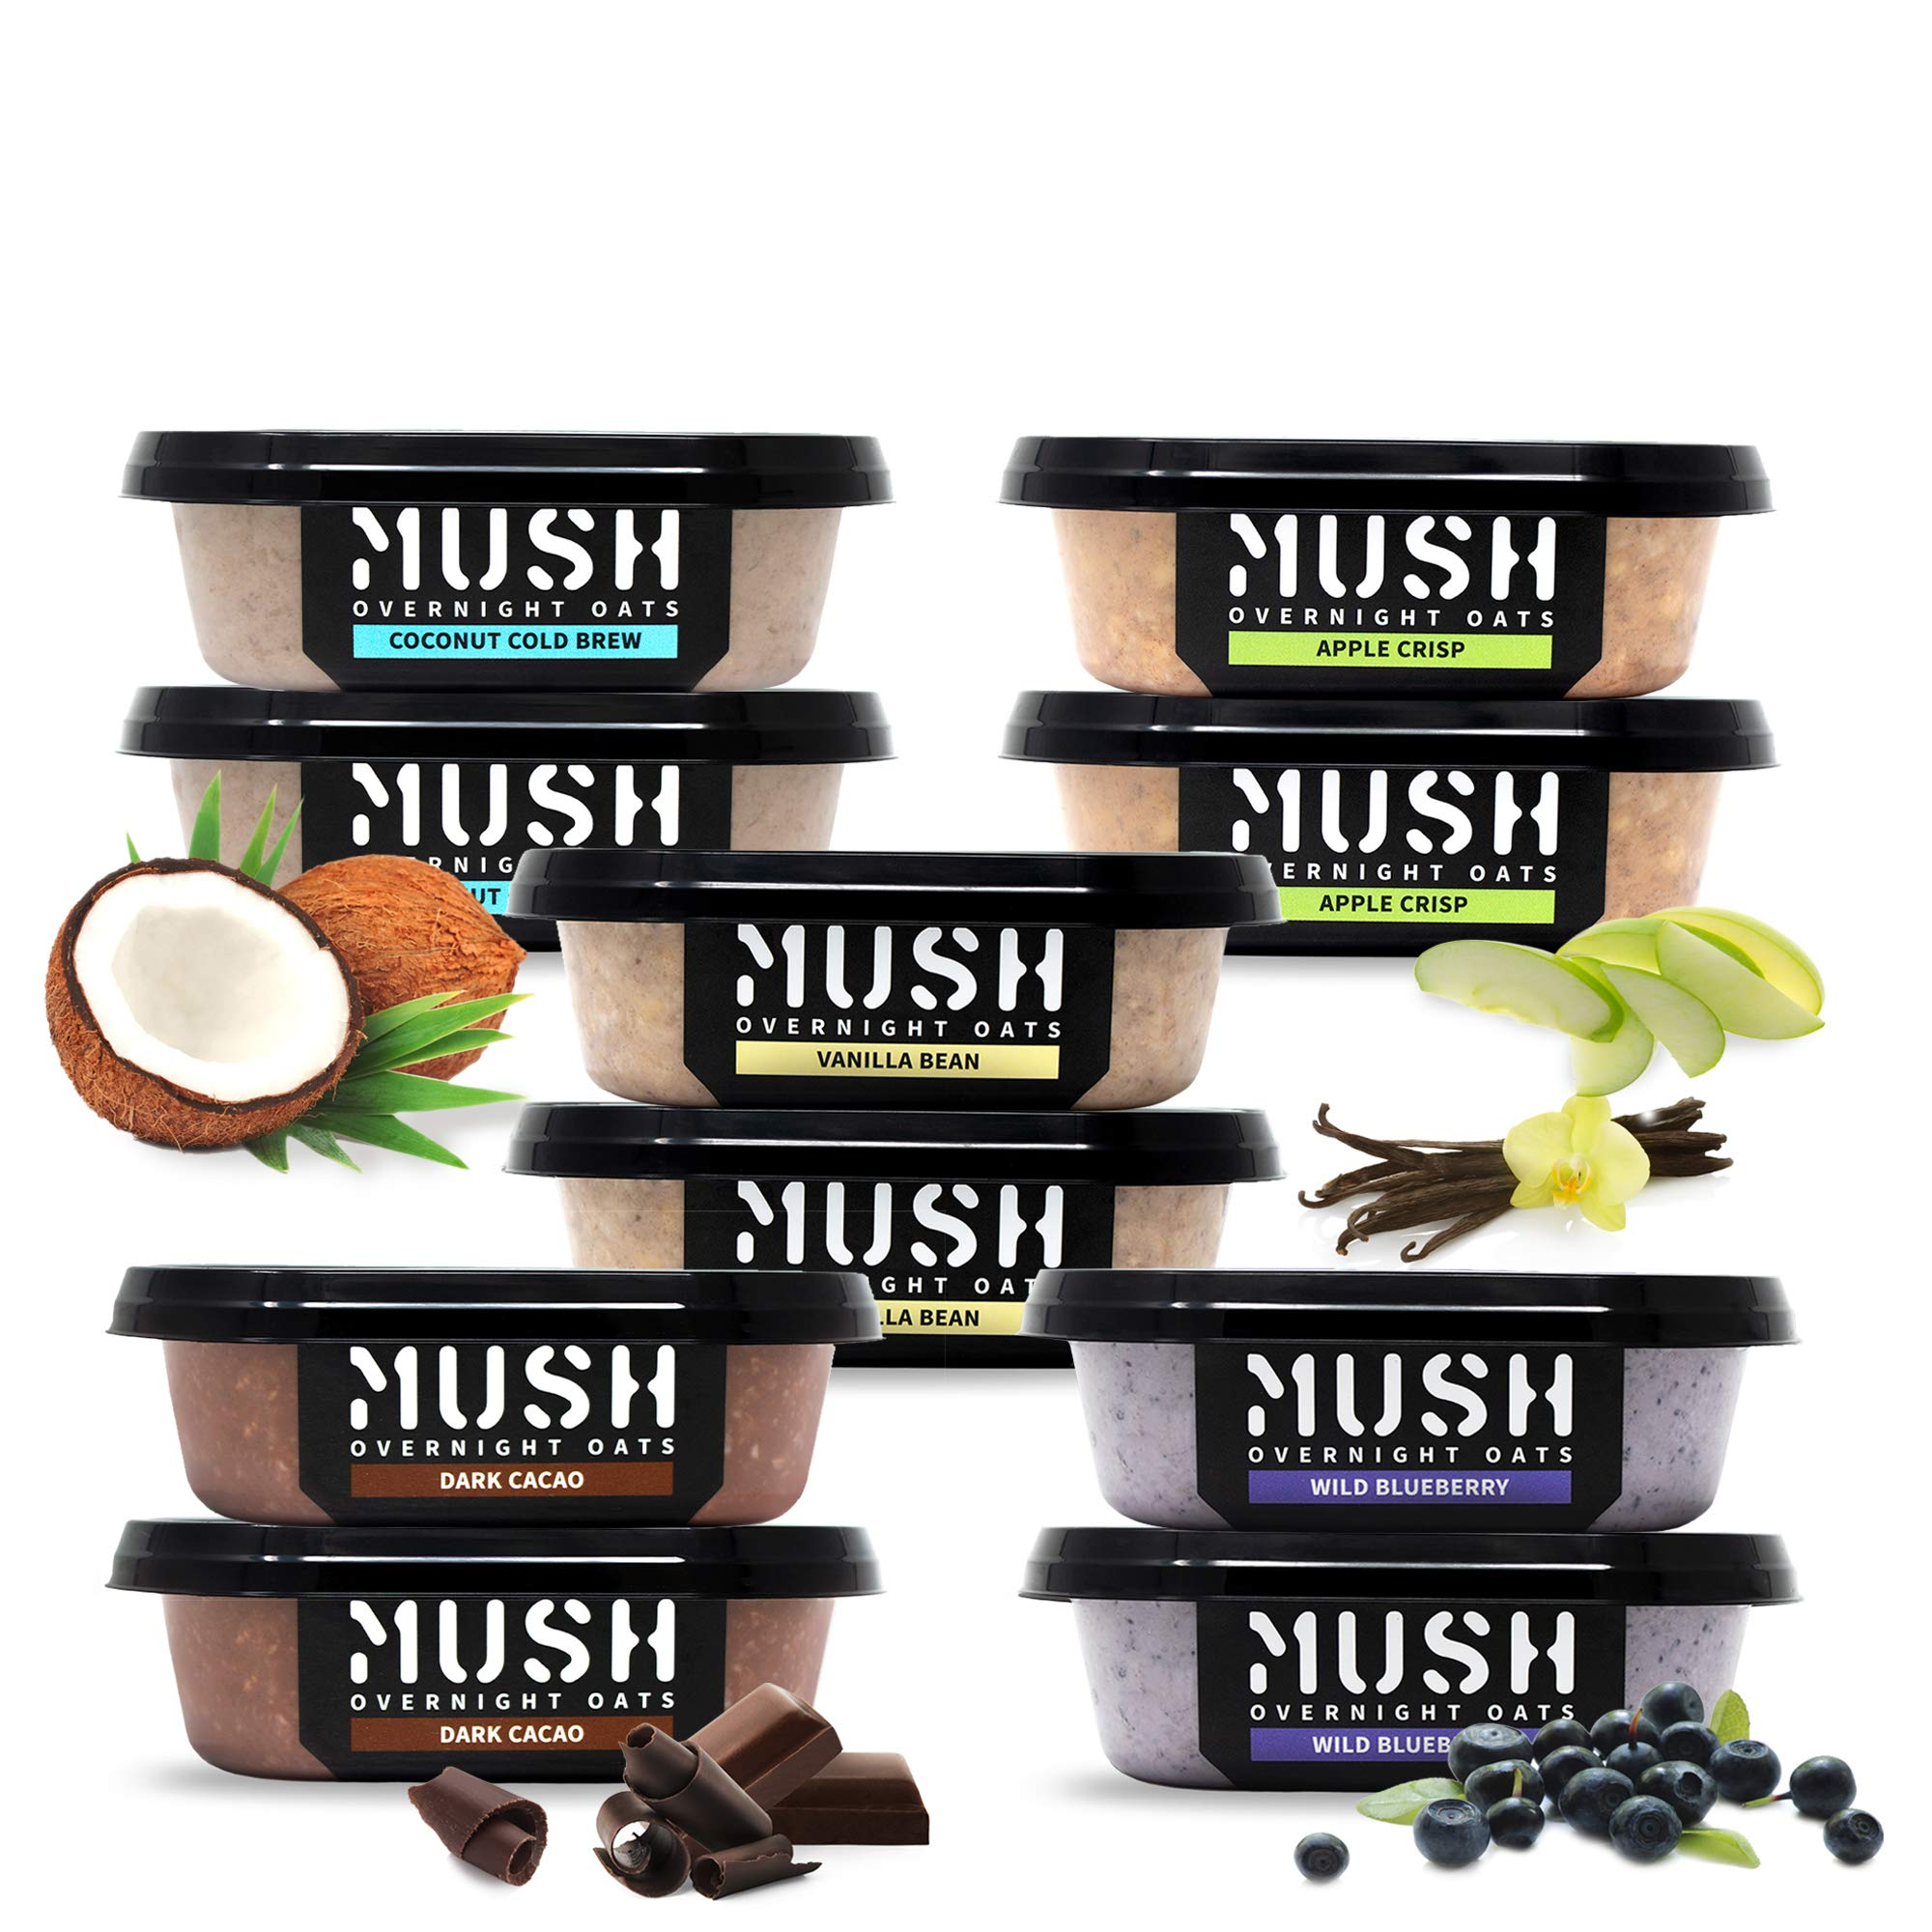 MUSH Overnight Oats Healthy Breakfast | Gluten-Free, Non-GMO, Dairy Free, Protein Rich, No Sugar | 10 Pack Oatmeal Cups| Wild Blueberry, Vanilla Bean, Dark Chocolate, Coffee + Coconut Cream, Apple Pie by MUSH RAW OVERNIGHT OATS MUSHED WITH LOVE SAN DIEGO, CA